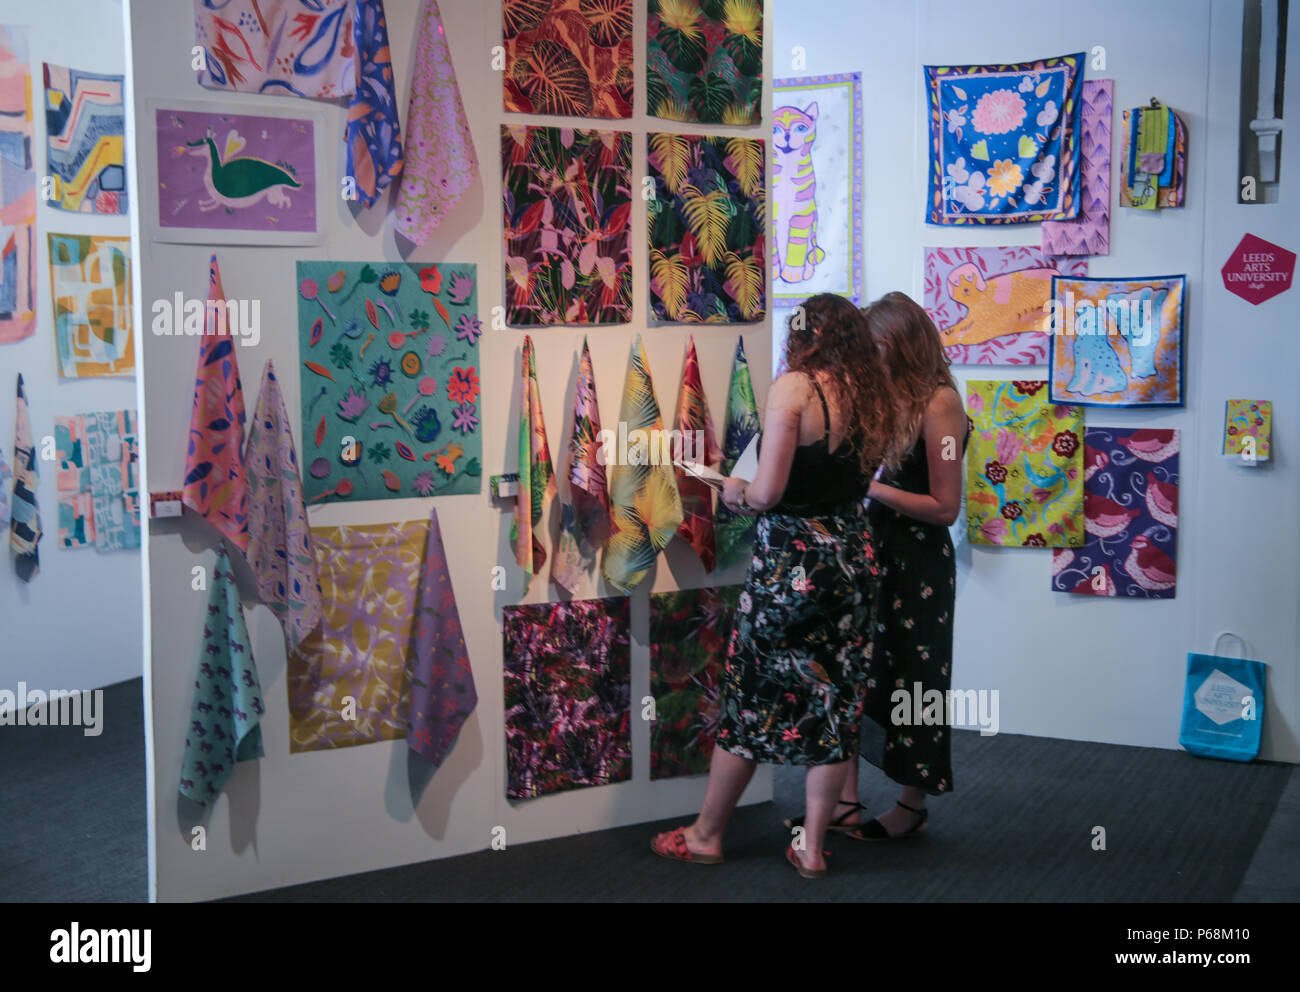 London UK 29 June 2018 Business Design center Islington New Designers. New Designers  the UK's leading graduate design show and the most important event for emerging designers. This is one  exhibition that continues to be a highly respected and successful platform for bringing new design talent and commerce together. Credit: Paul Quezada-Neiman/Alamy Live News - Stock Image